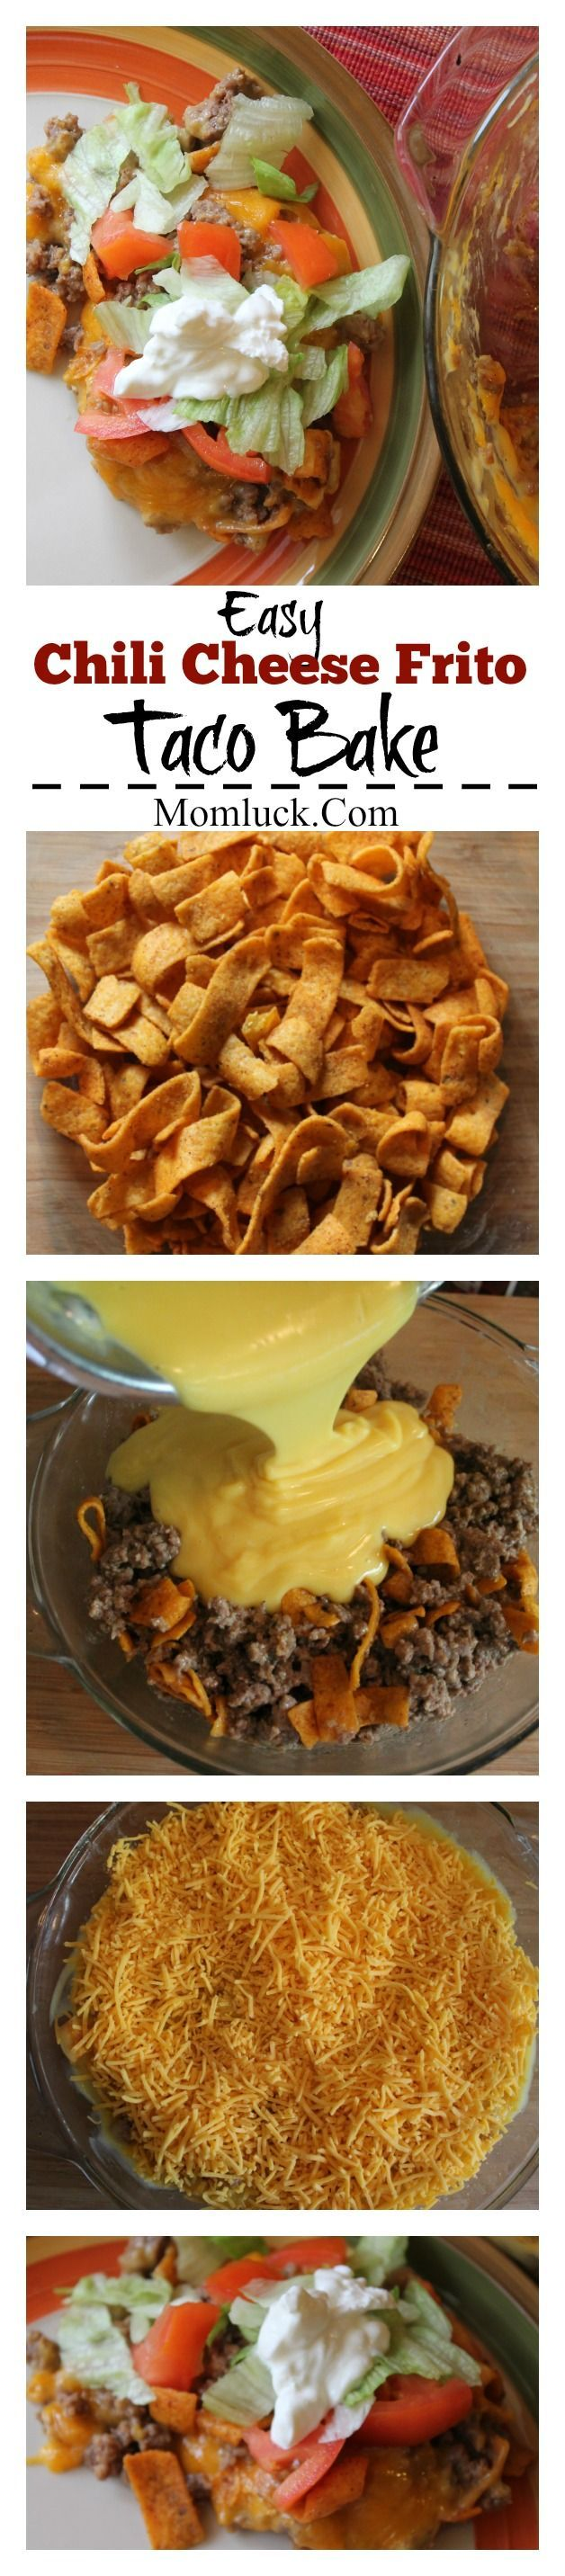 Easy Chili Cheese Frito Taco Bake: Kid Friendly Recipe Great for Weeknights!